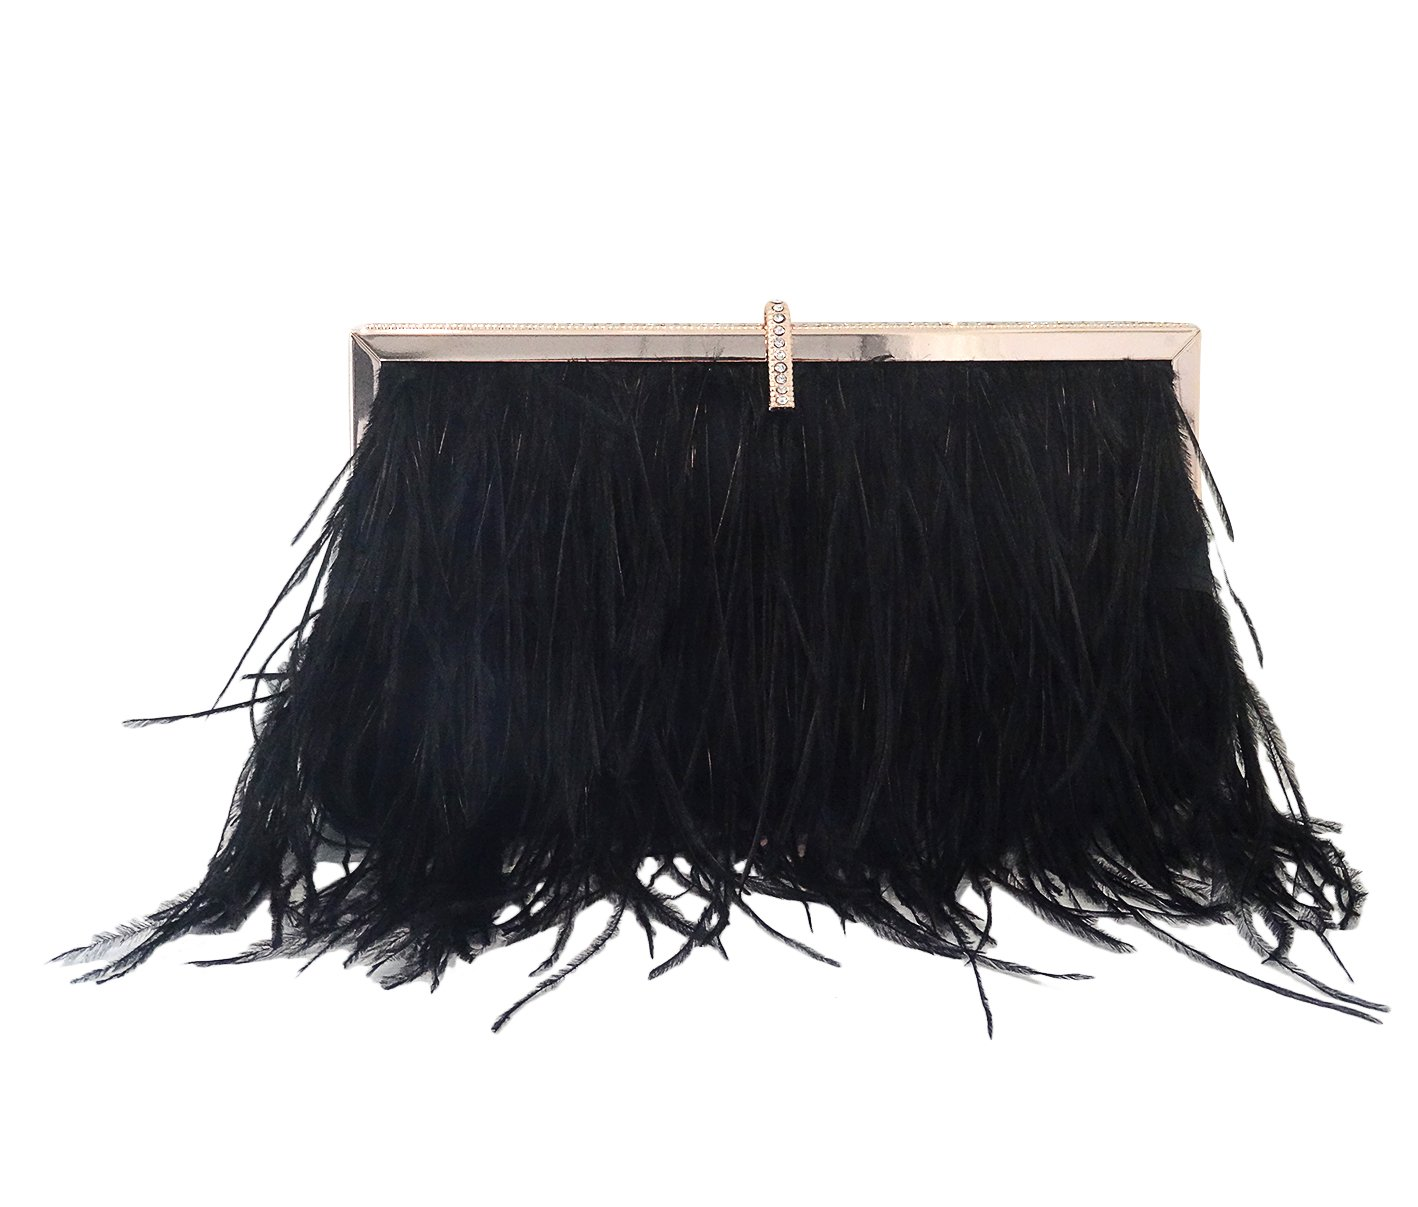 Zakia Real Natural Ostrich Feather Evening Clutch Shoulder Bag Party Bag (Black-B) by Zakia (Image #1)